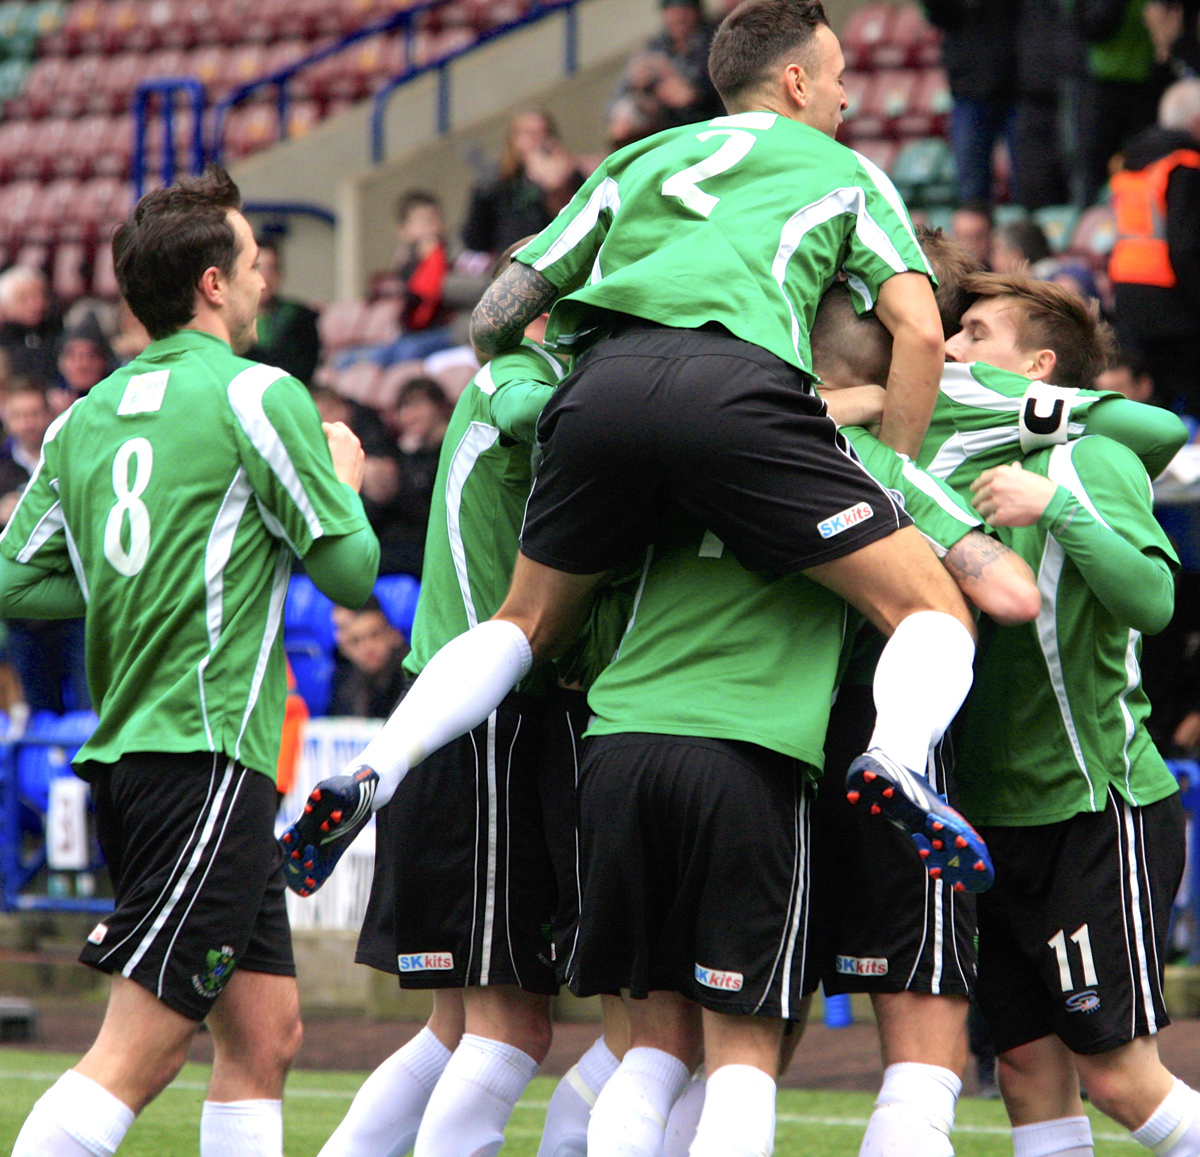 1874 Northwich players celebrate Mike Brandon's goal against Formby on Saturday. Picture: Matt Draycott